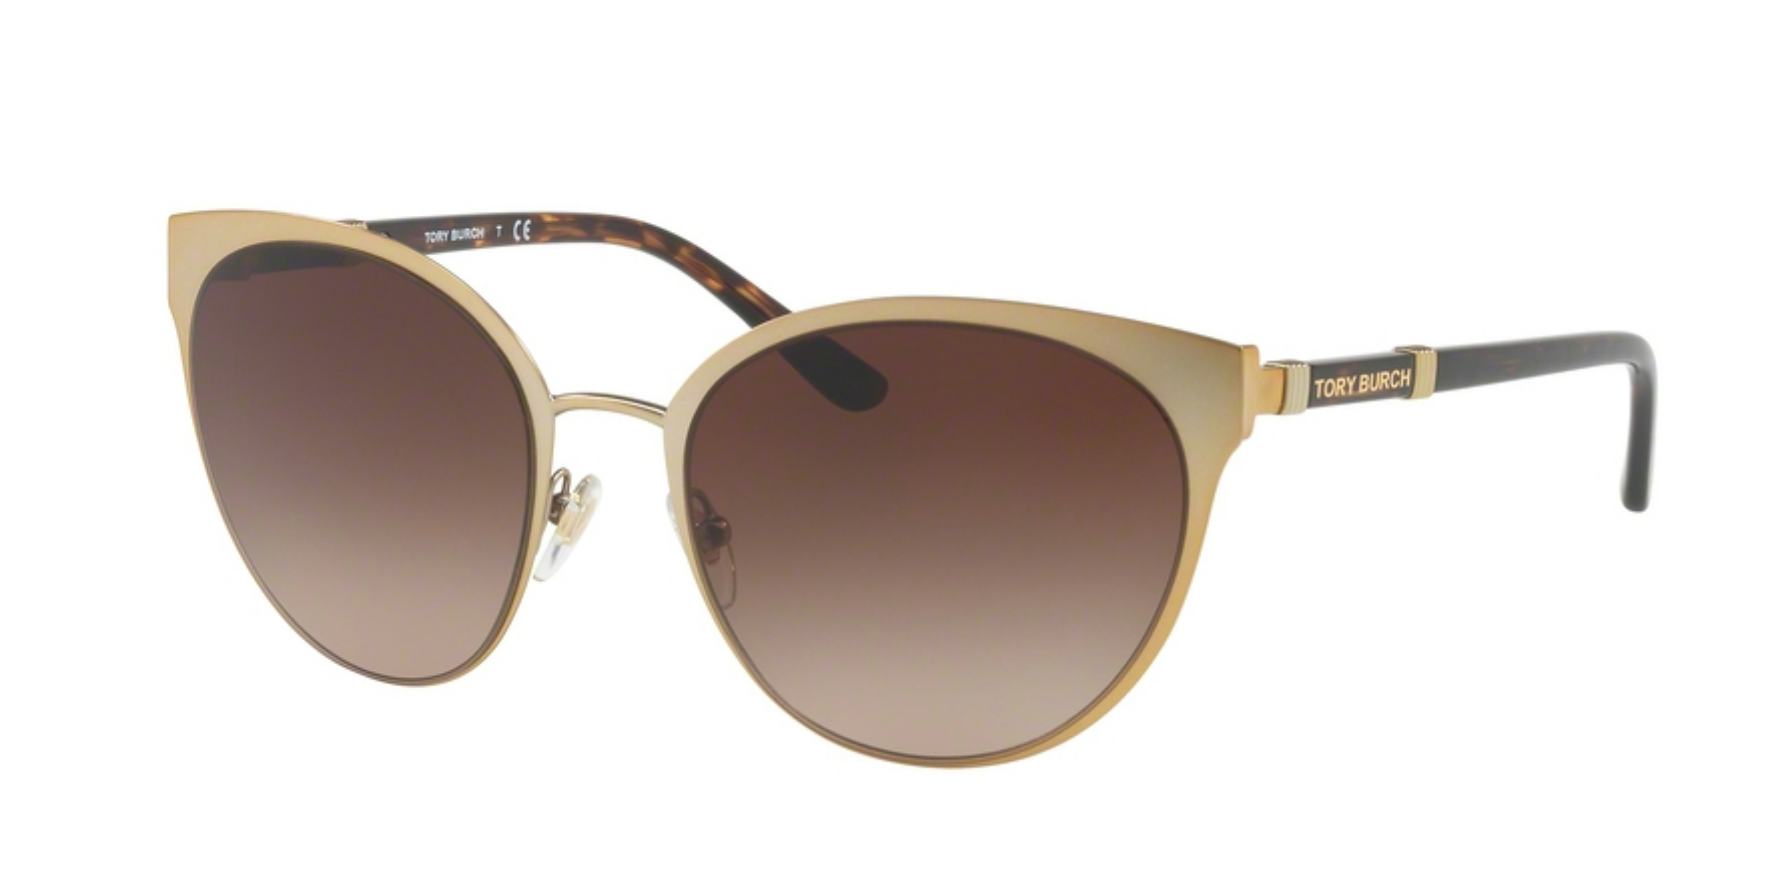 Tory Burch TY6058 (GOLD)